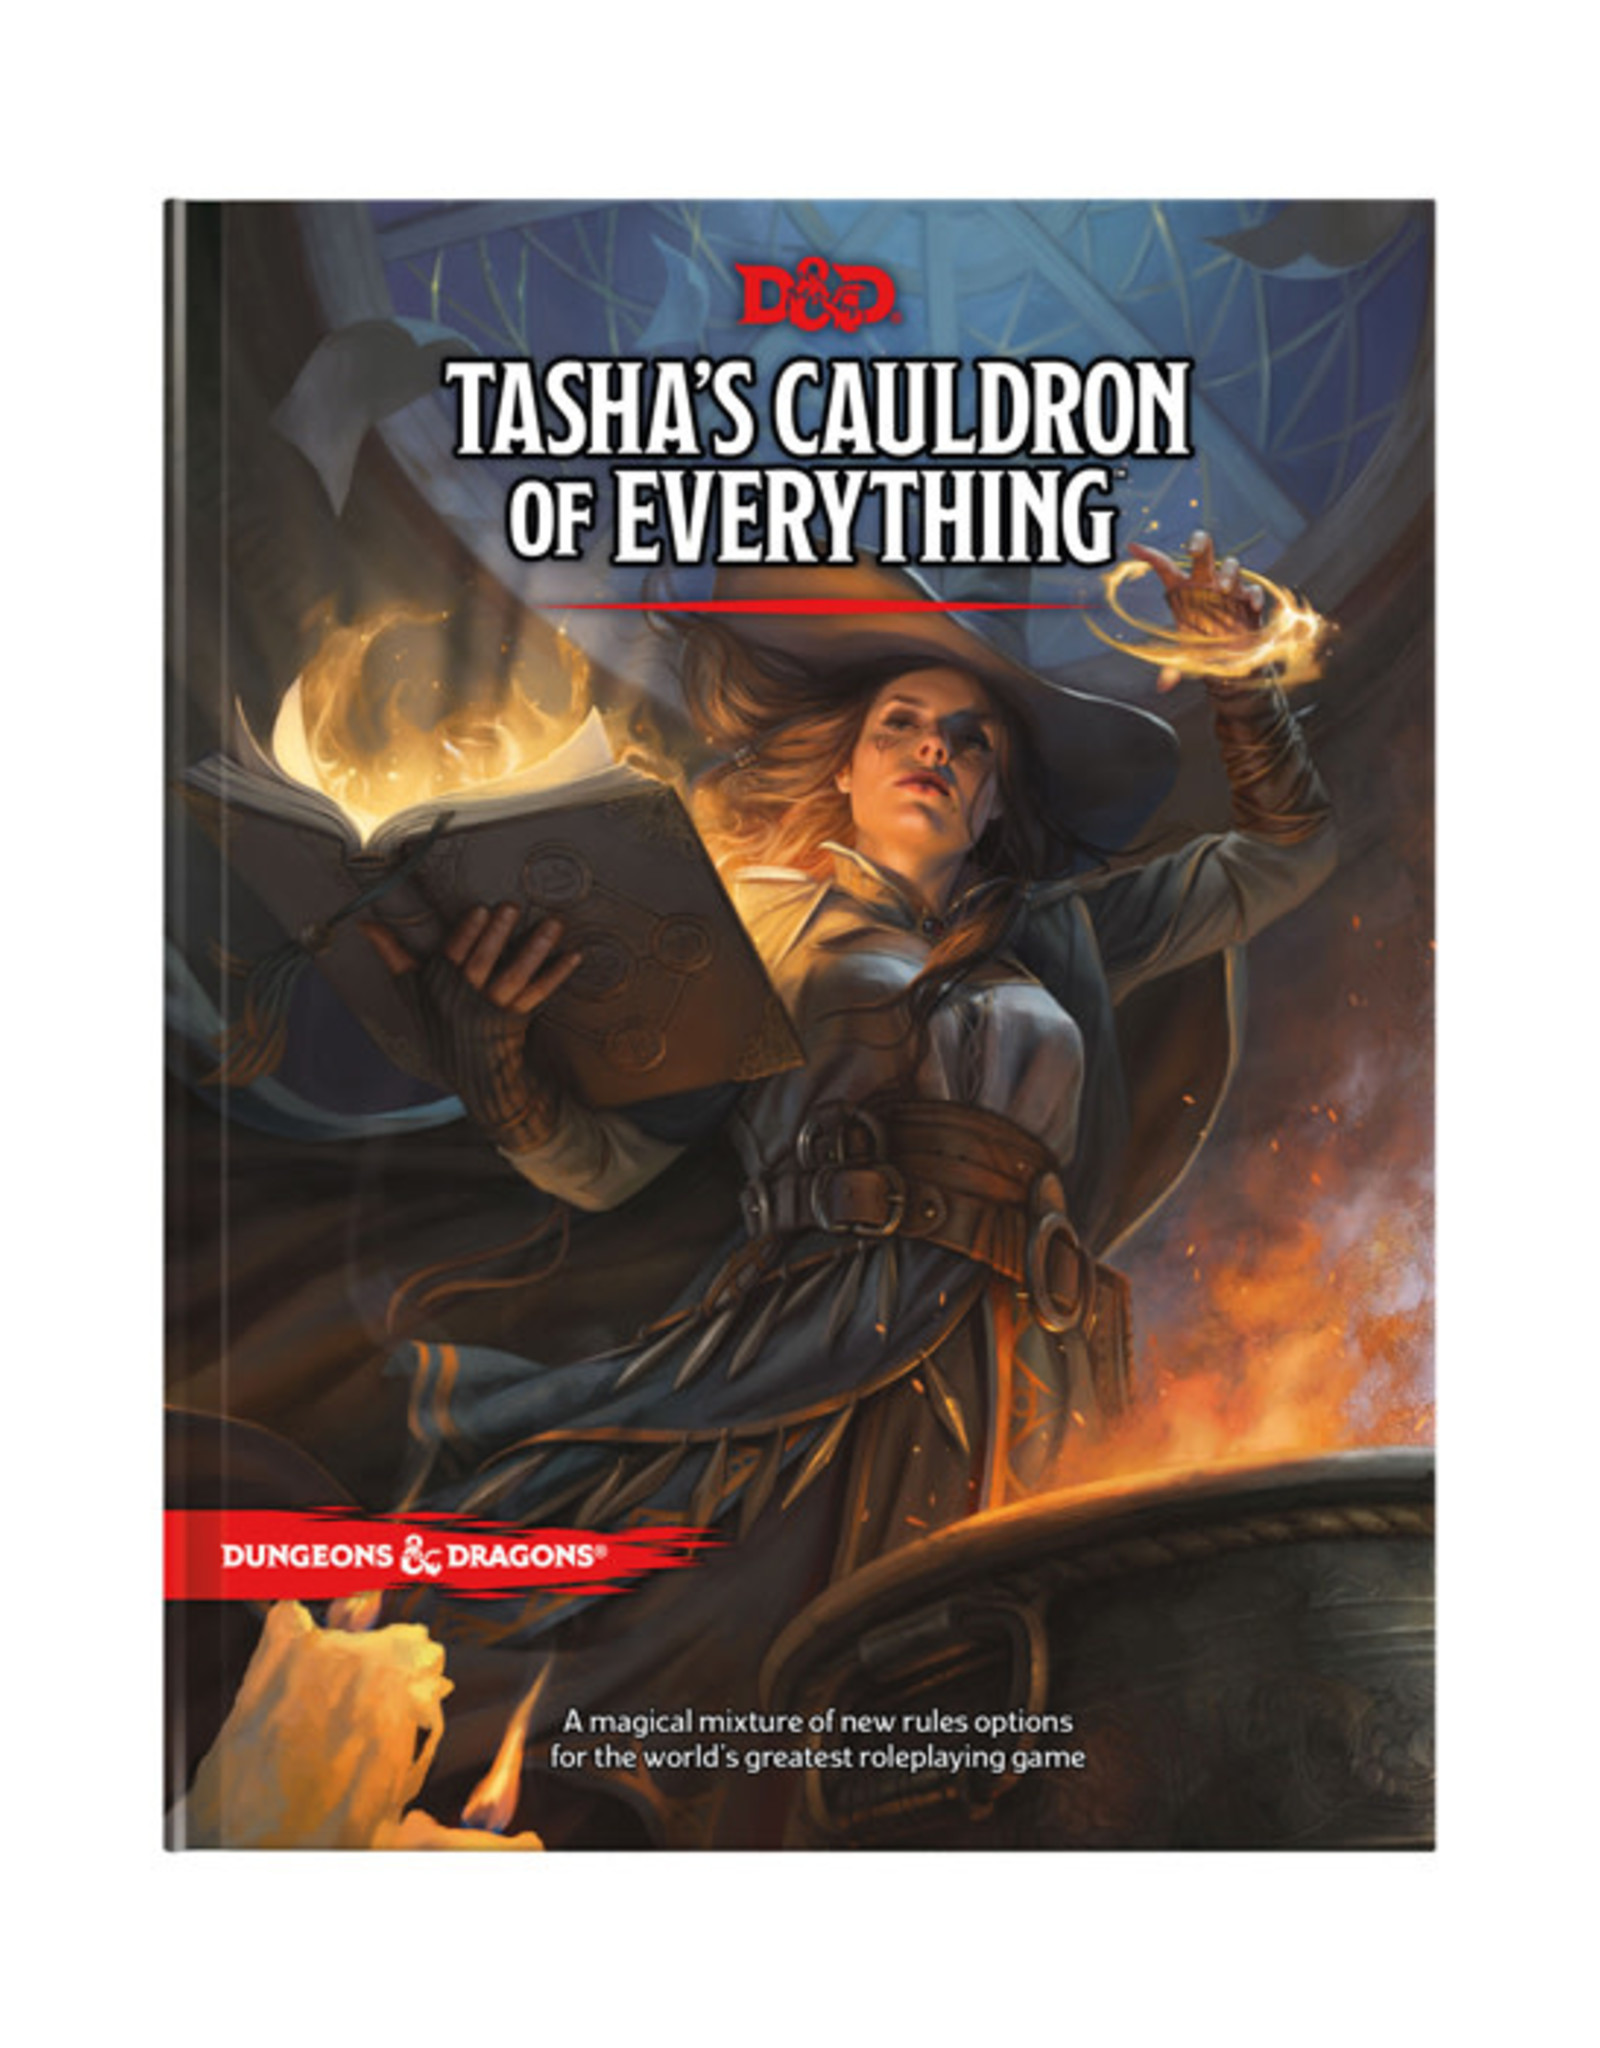 Dungeons & Dragons Dungeons & Dragons: 5th Edition - Tasha's Cauldron of Everything PREORDER